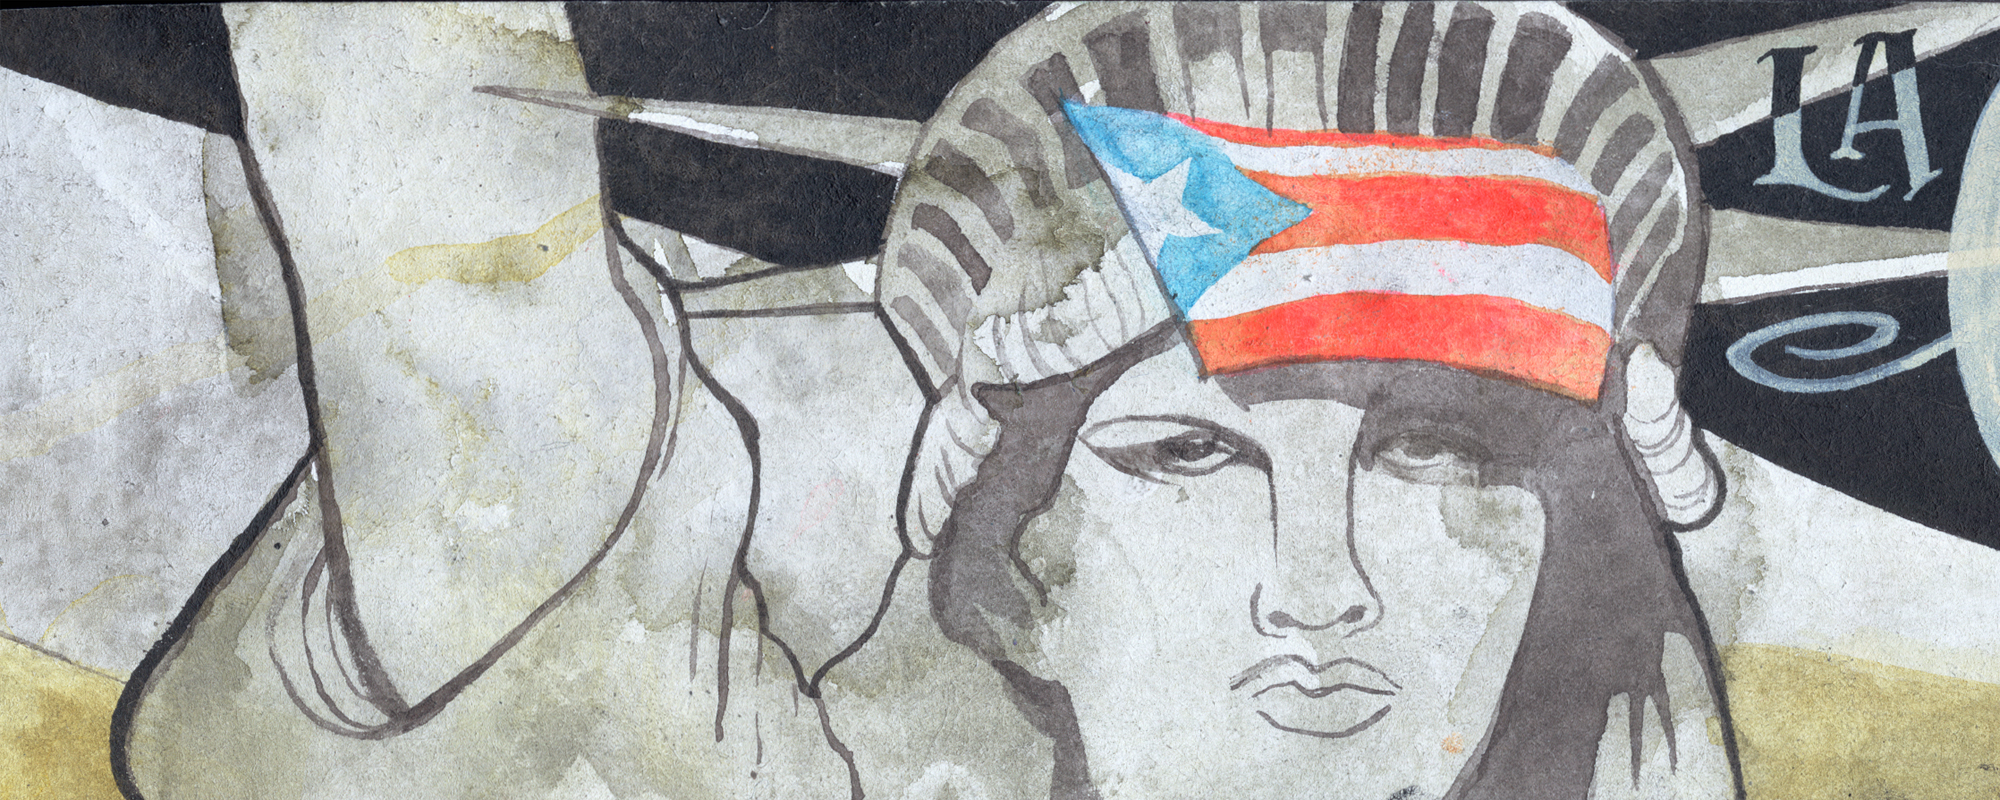 End the debt! Decolonize! Liberate Puerto Rico! Scroll